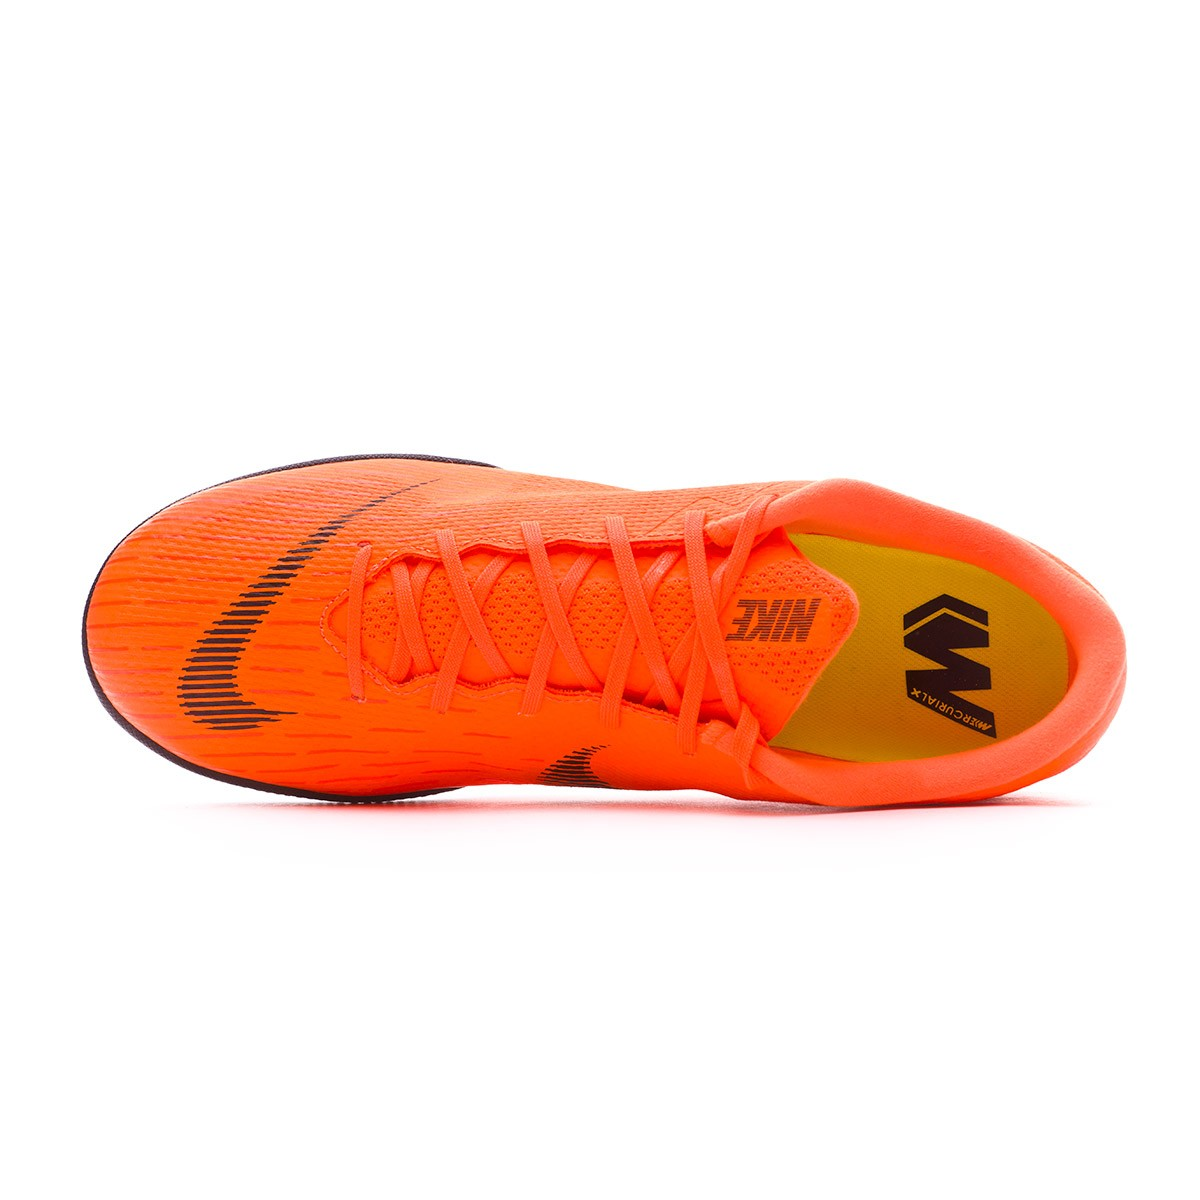 1ef5c54d4503a Futsal Boot Nike Mercurial VaporX XII Academy IC Total orange-Black-Volt -  Tienda de fútbol Fútbol Emotion